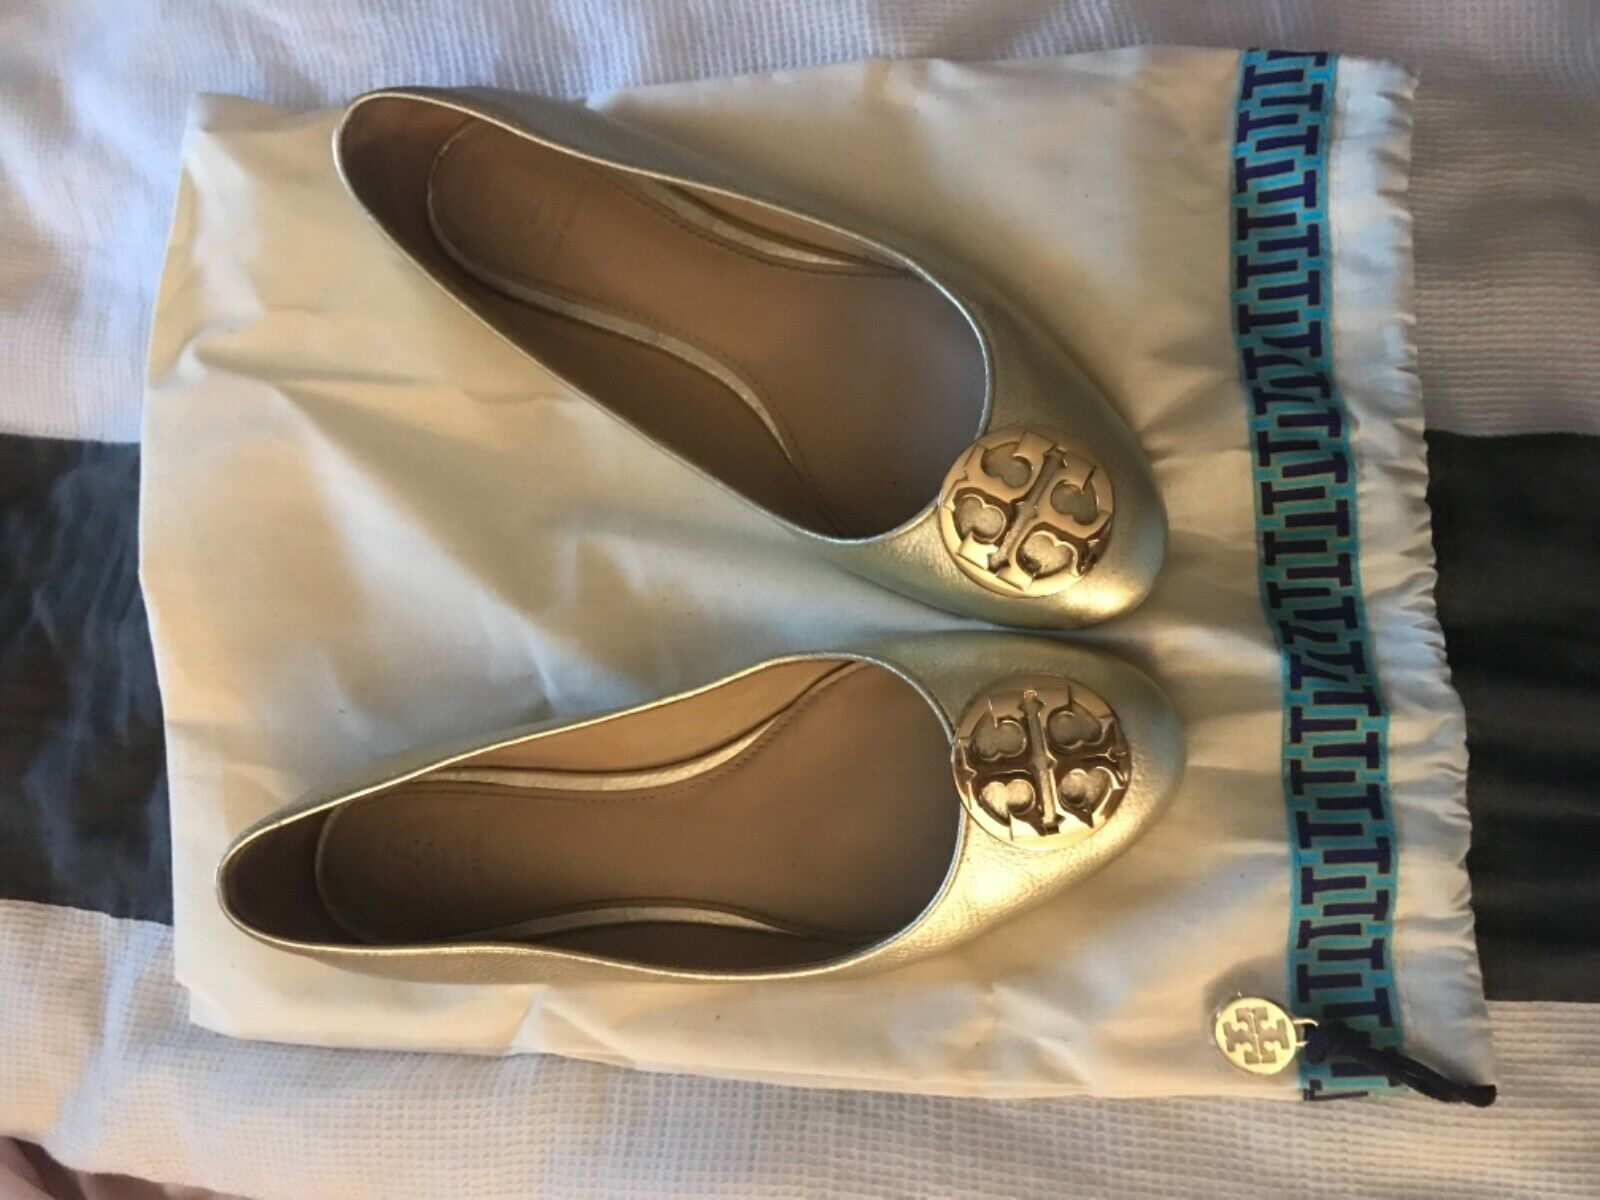 Tory Burch Claire Ballerina Flat - image 1